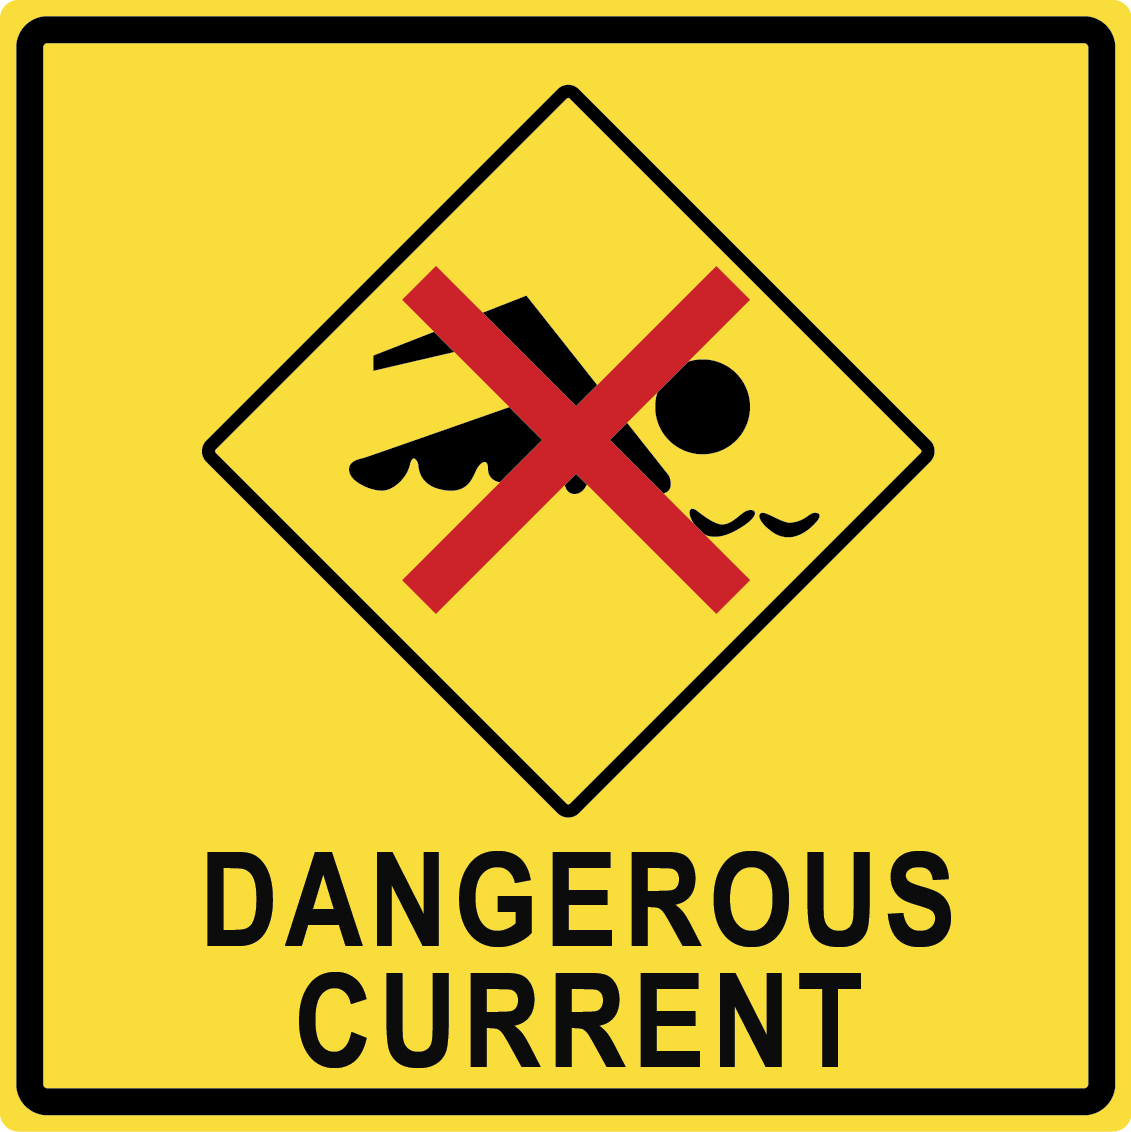 Dangerous Current Sign 1490.96 Kb